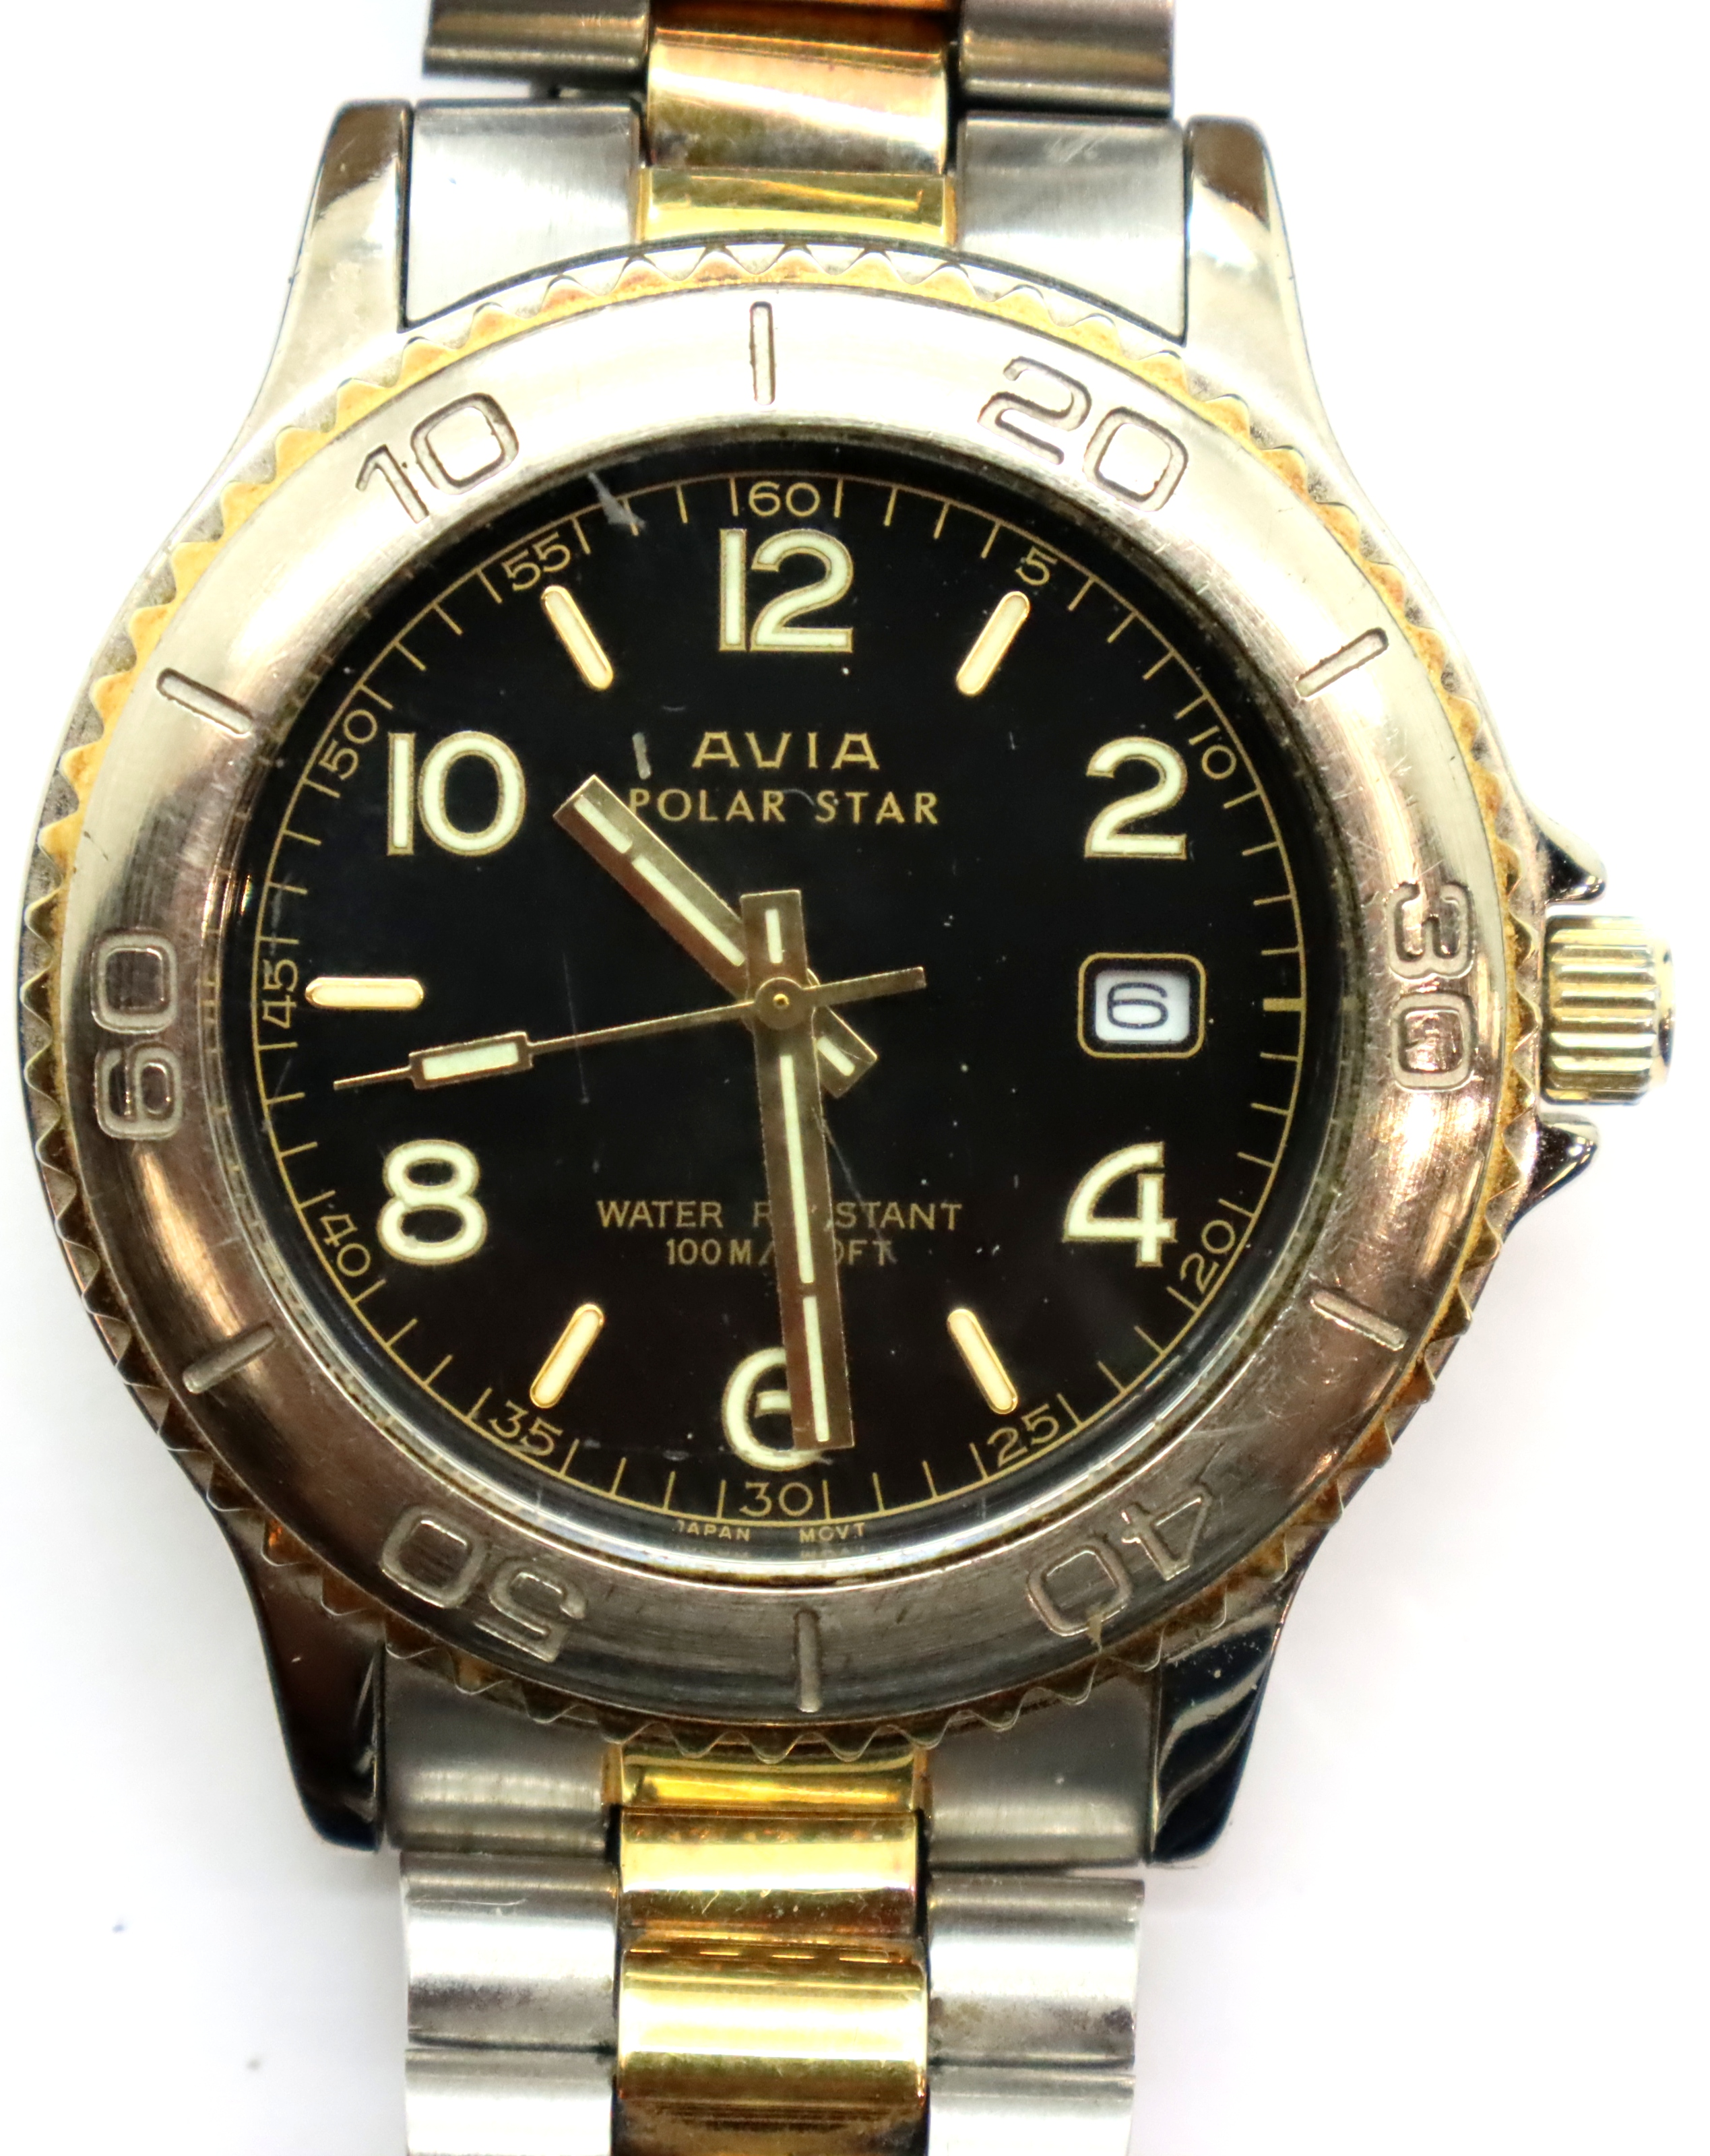 Gents Avia wristwatch, D: 3 cm. P&P Group 1 (£14+VAT for the first lot and £1+VAT for subsequent